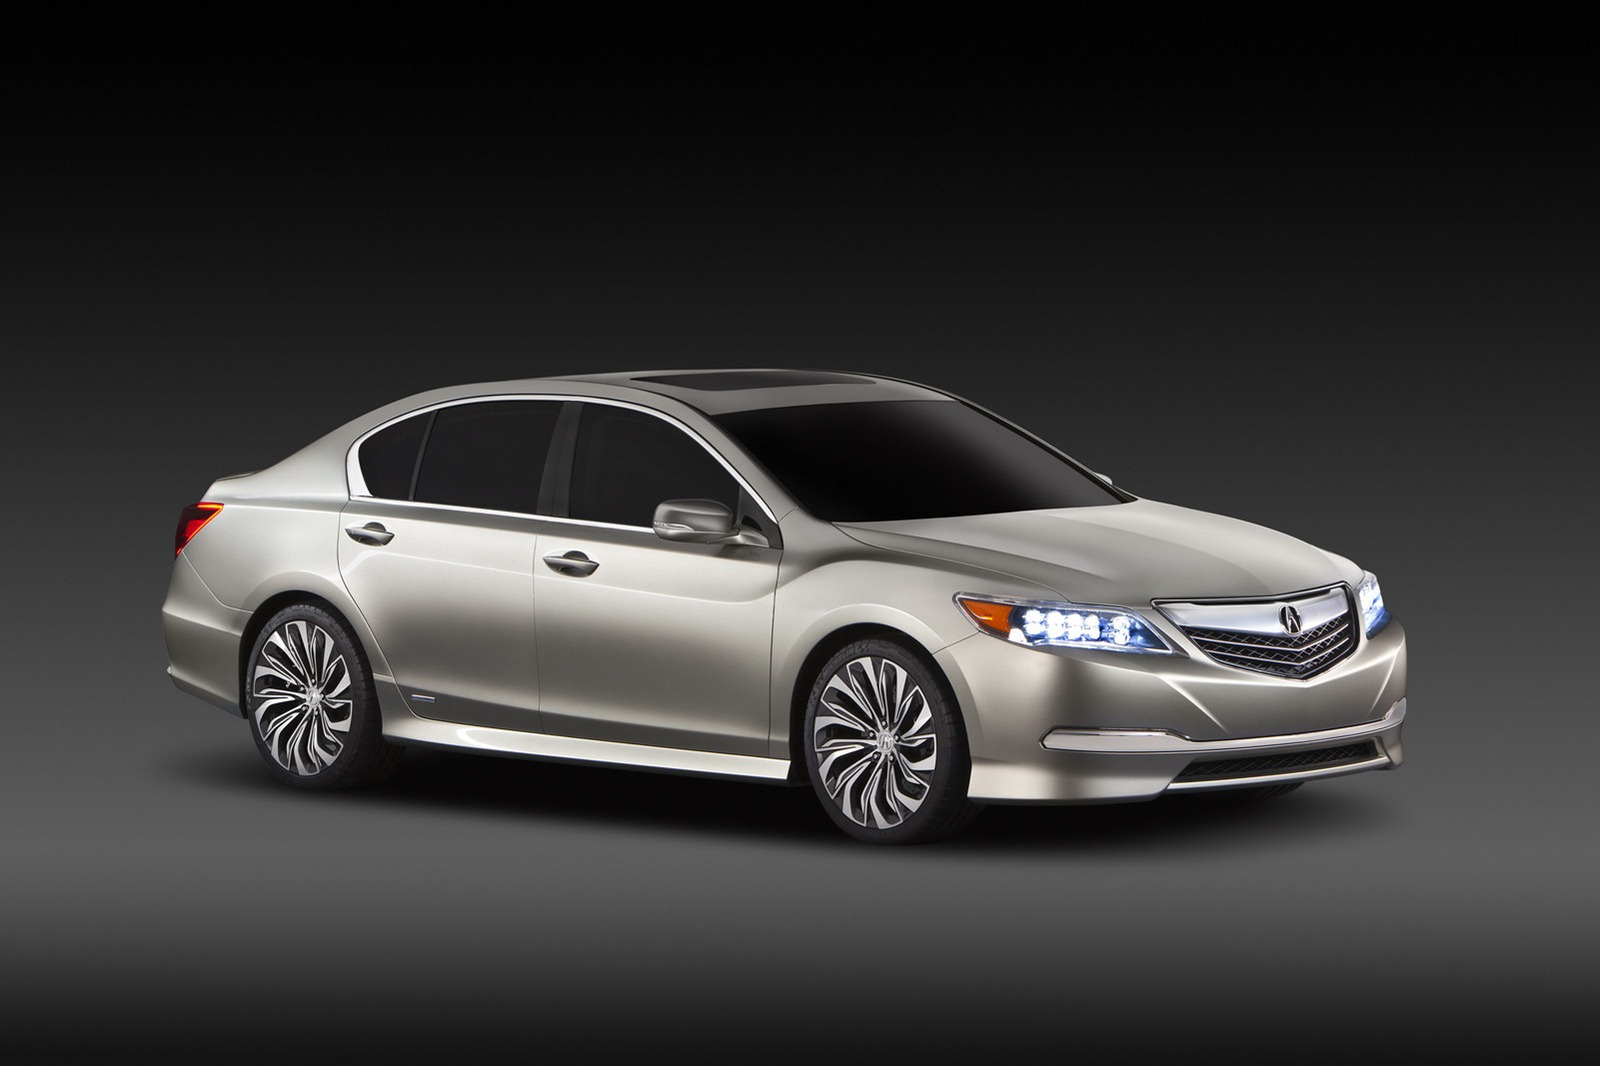 2013 Acura RLX Concept Unveiled: Photos and Video - autoevolution